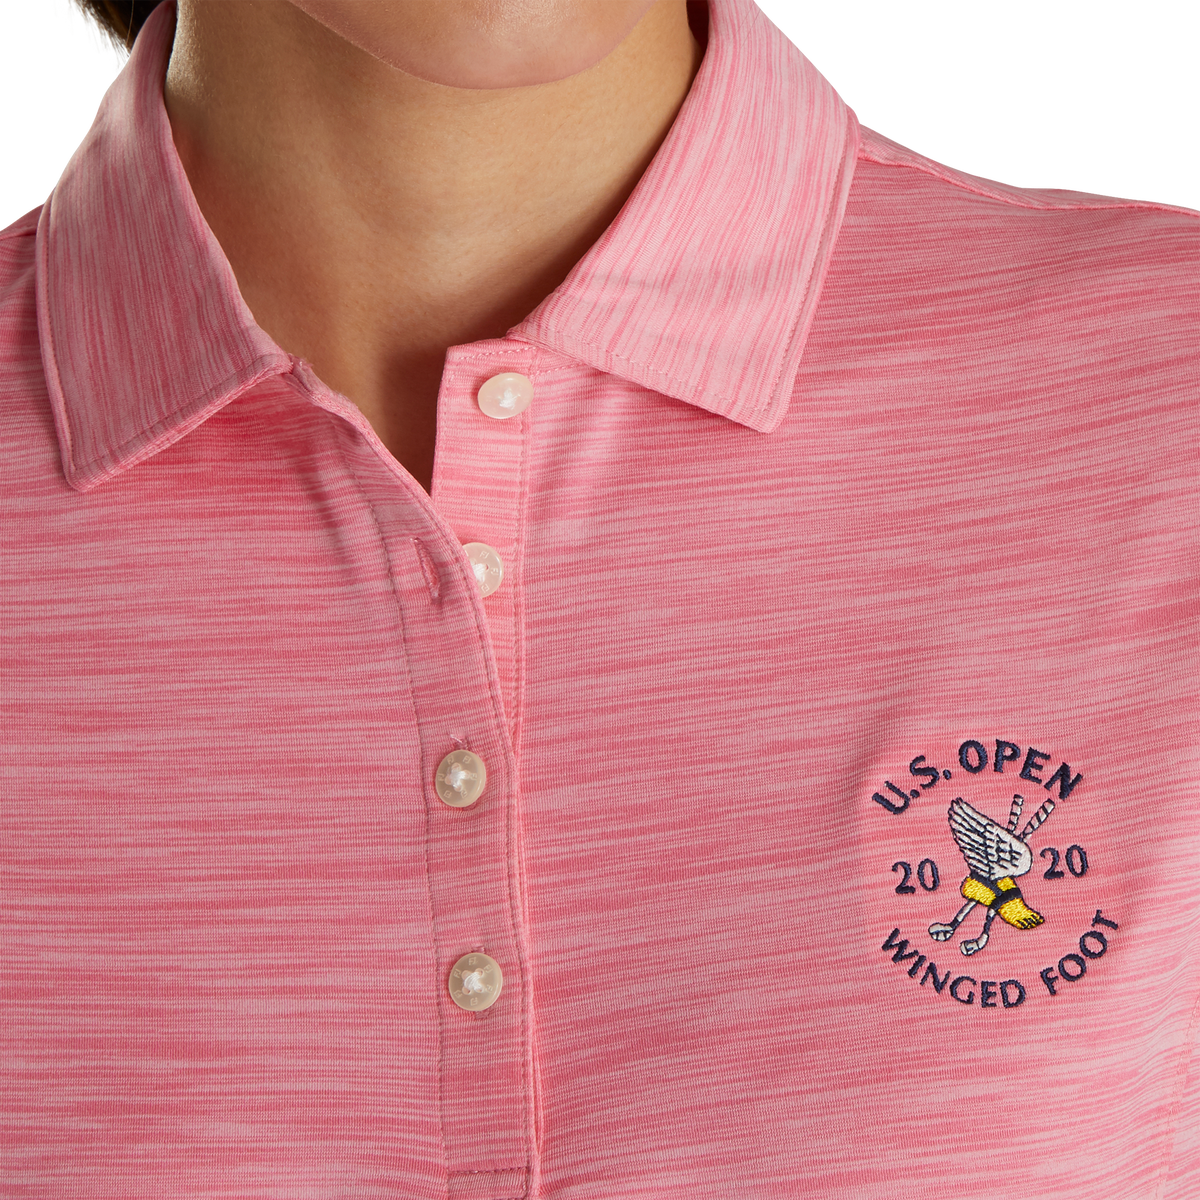 2020 U.S. Open ProDry Interlock Shirt Self Collar Women